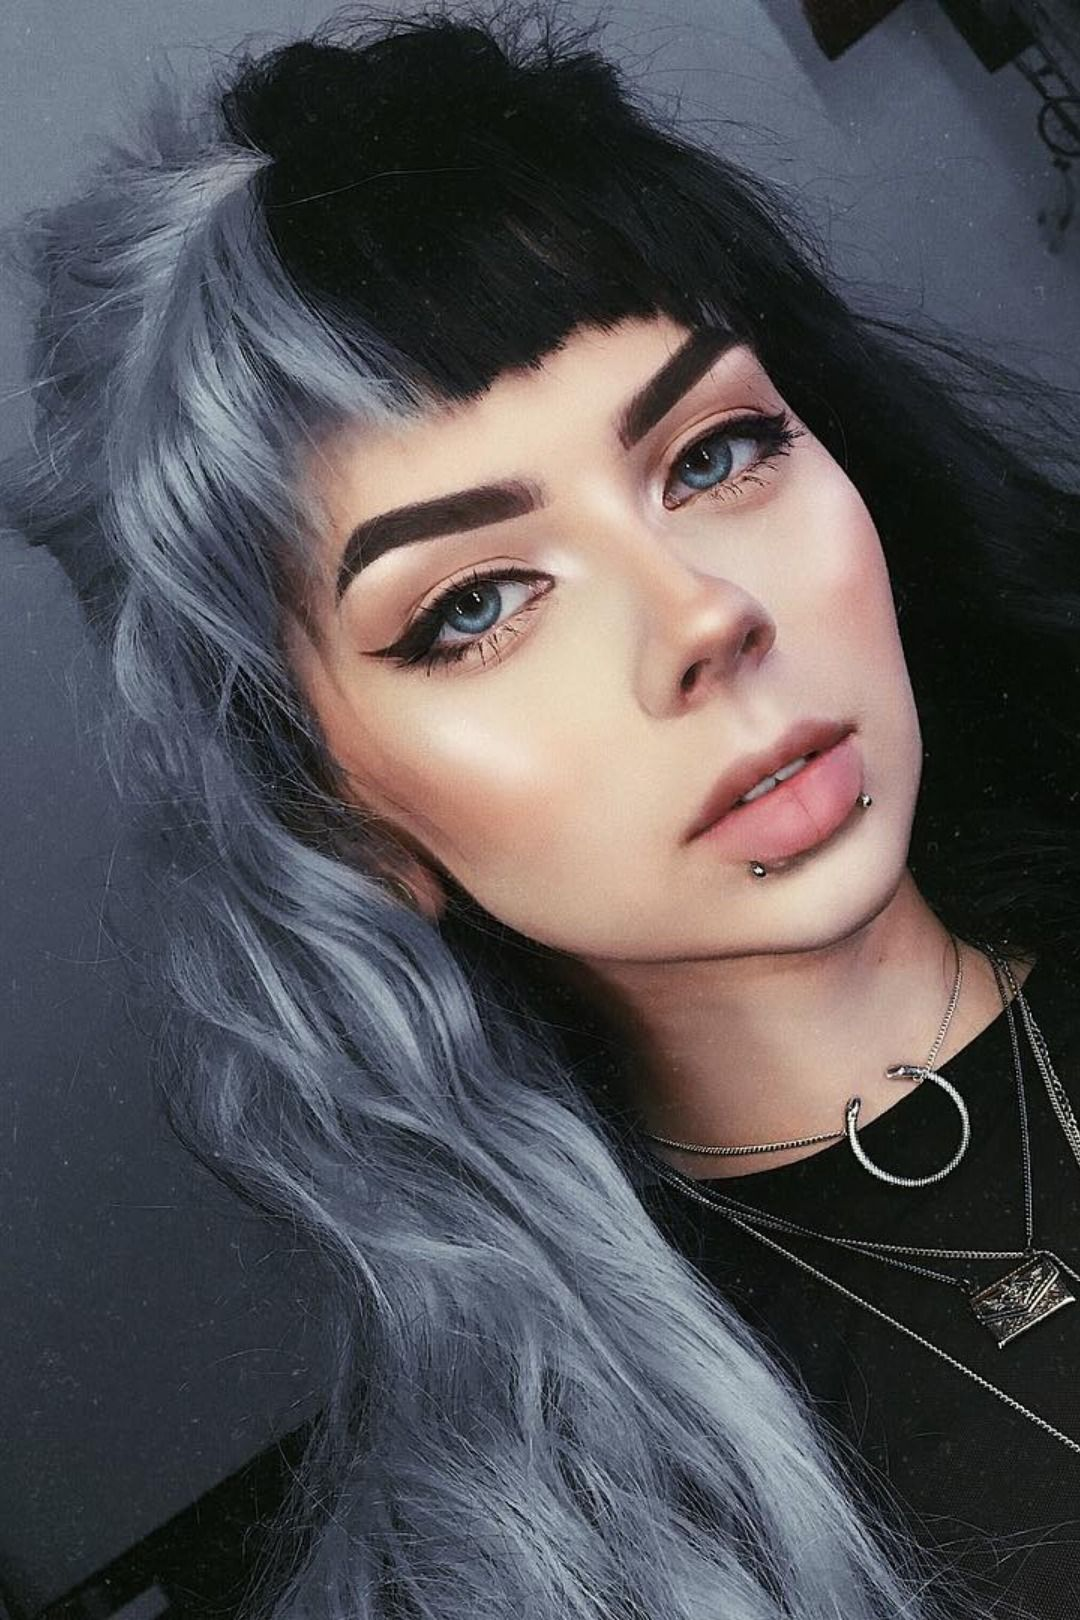 Half Black And Half Grey Water Wavy Quite Long Synthetic Lace Front Wig Split Dyed Hair Hair Inspo Color Hair Styles